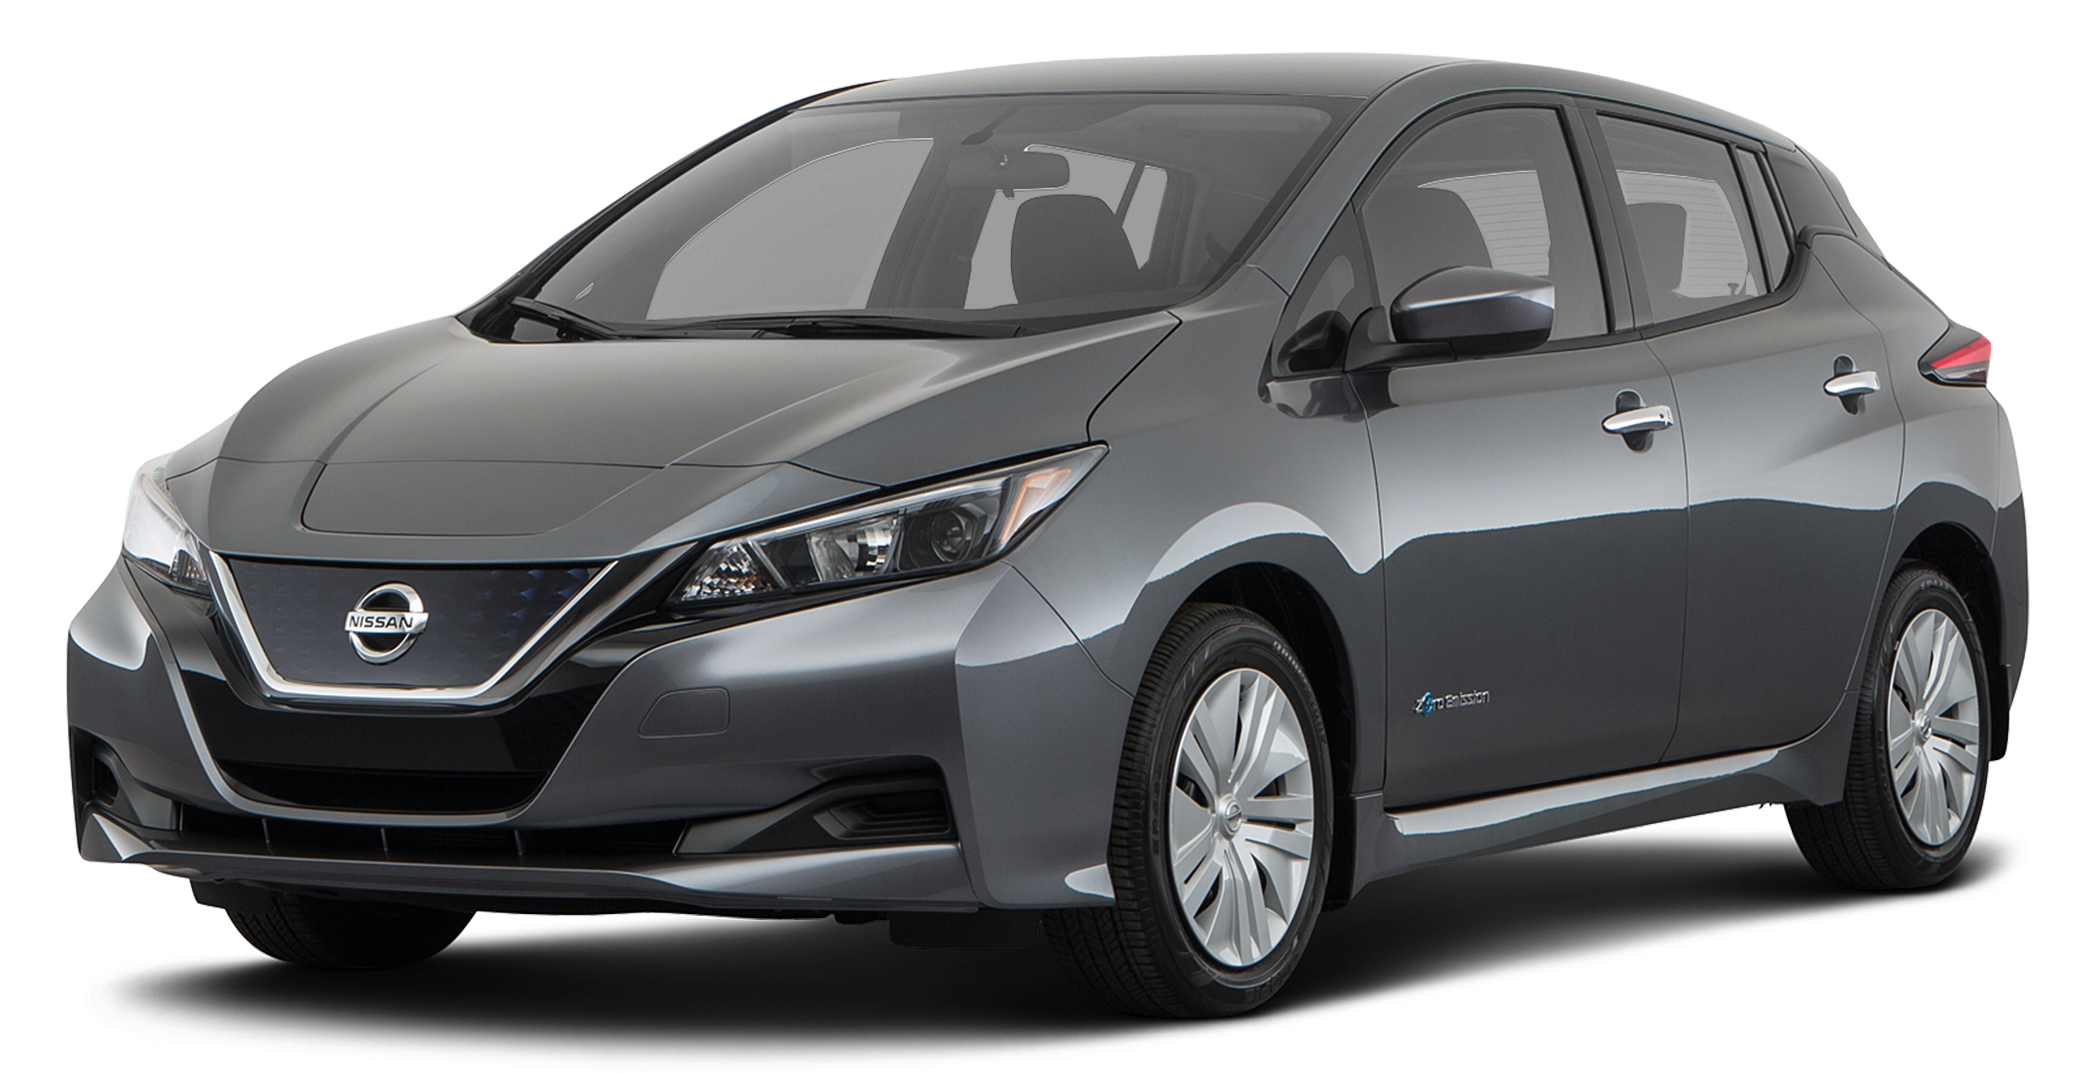 2019 Nissan LEAF Hatchback